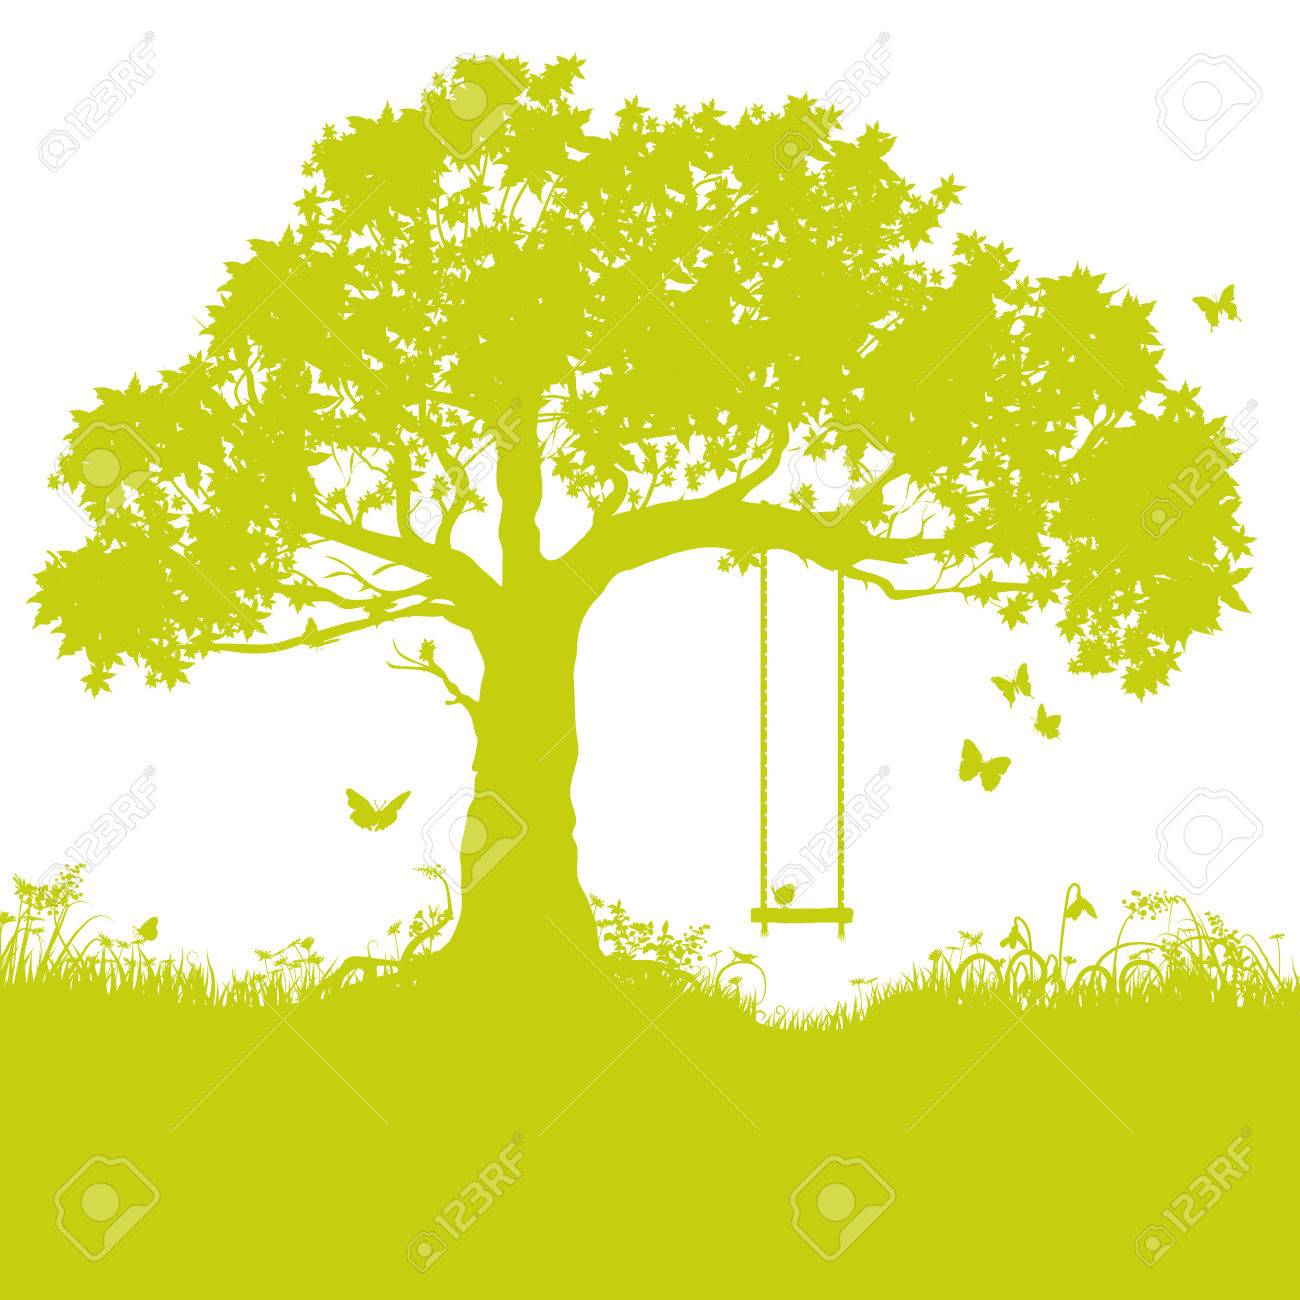 Swing in tree and childhood memory - 40236457